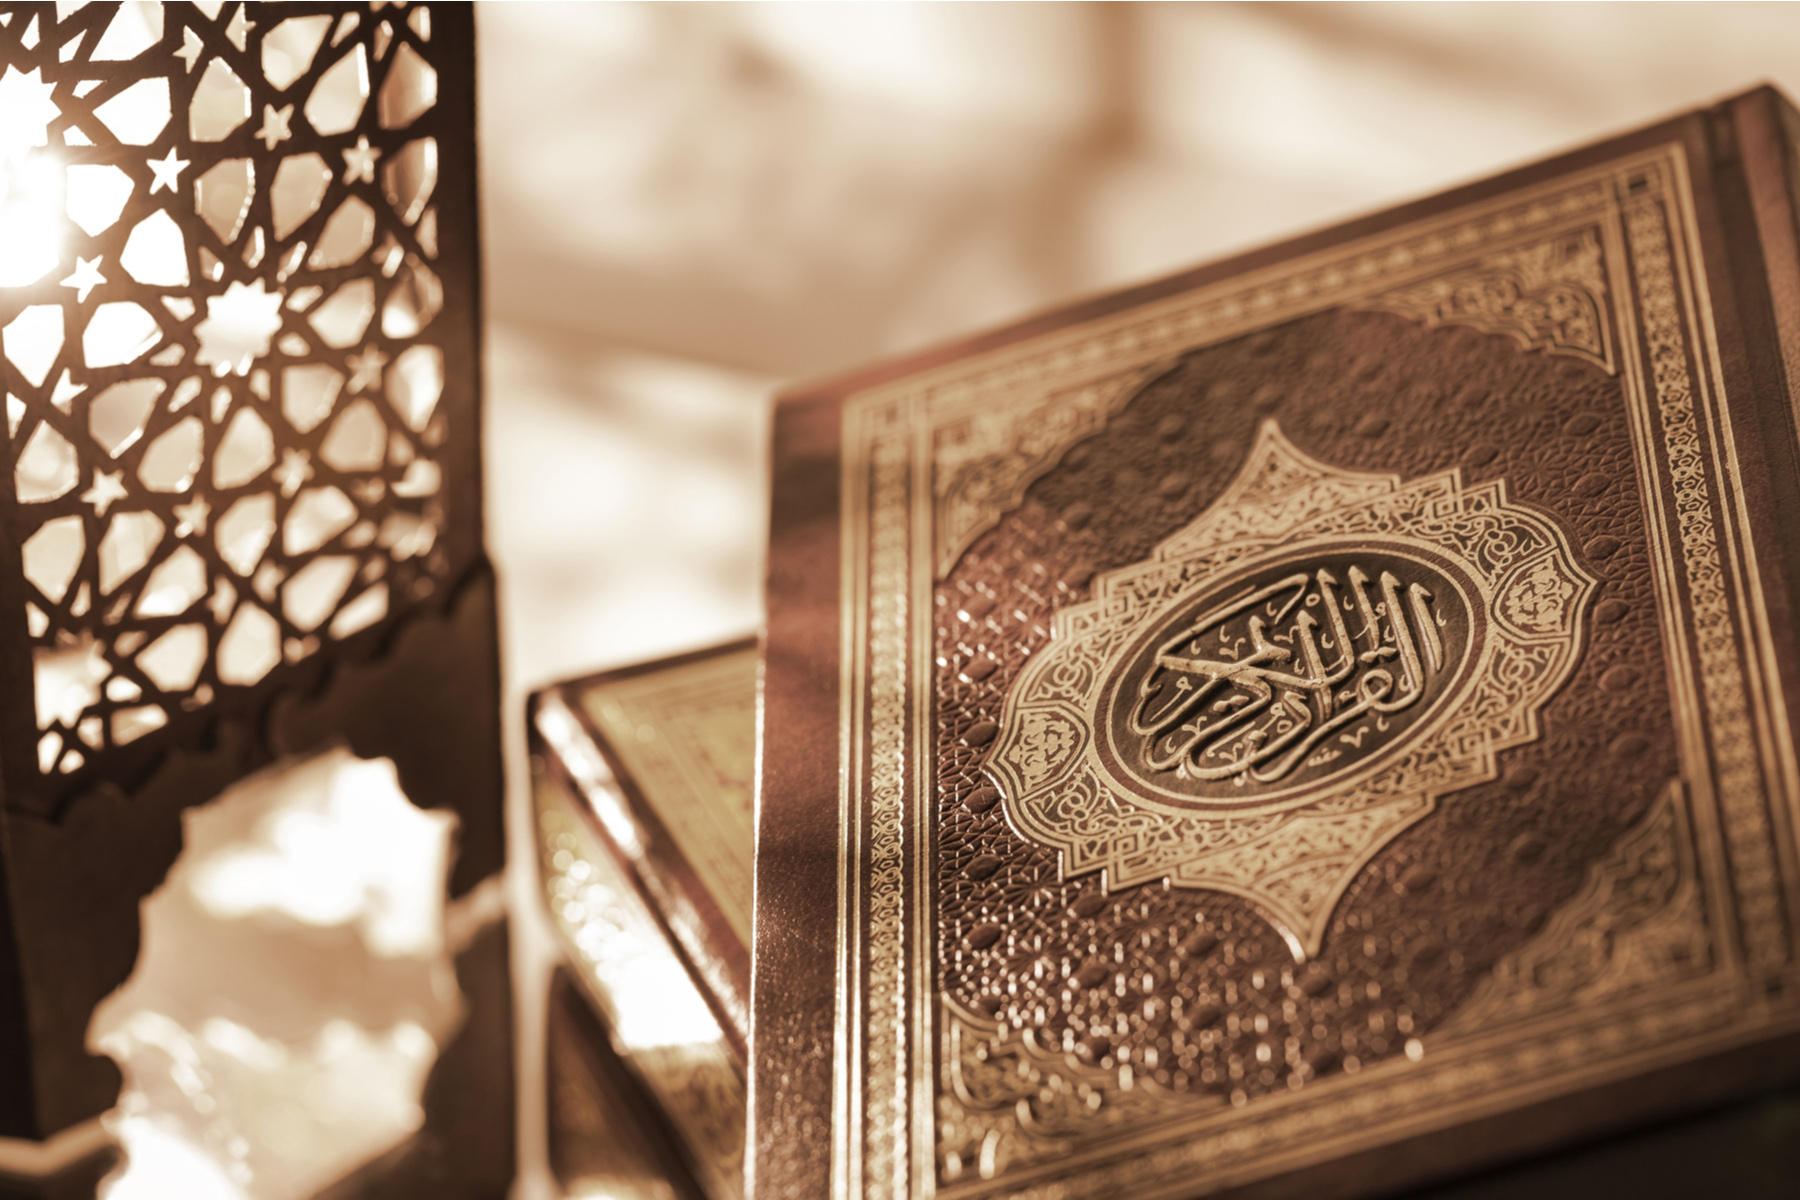 Ornate front cover of a Qur'an